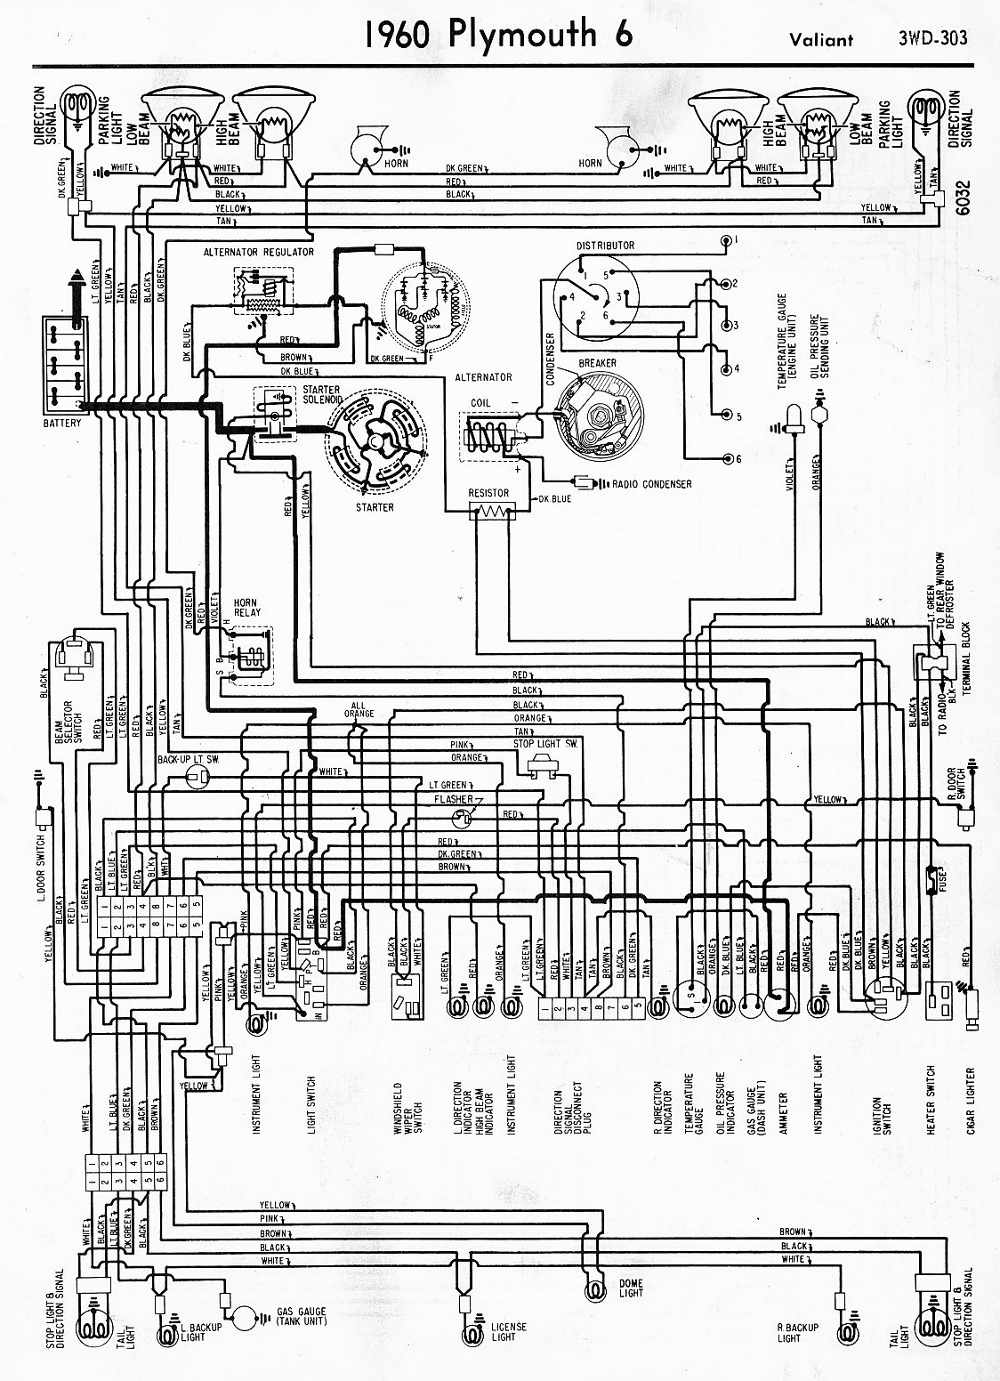 1970 Plymouth Duster Ignition Wiring Diagram Worksheet And 70 Road Runner Fuse Box Layout Diagrams U2022 Rh Laurafinlay Co Uk 1974